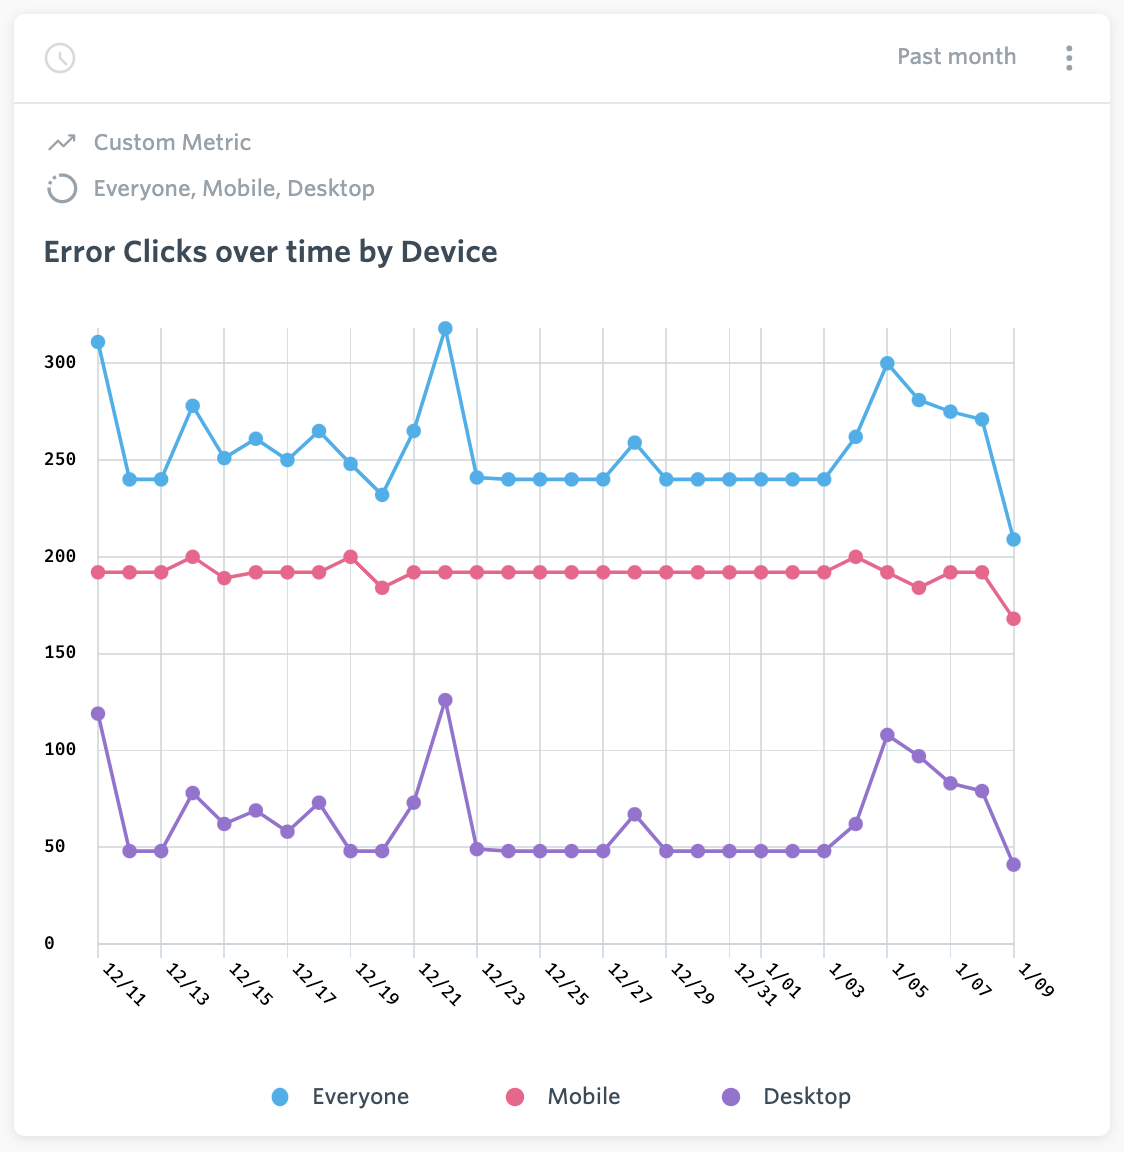 Error Clicks over time by Device